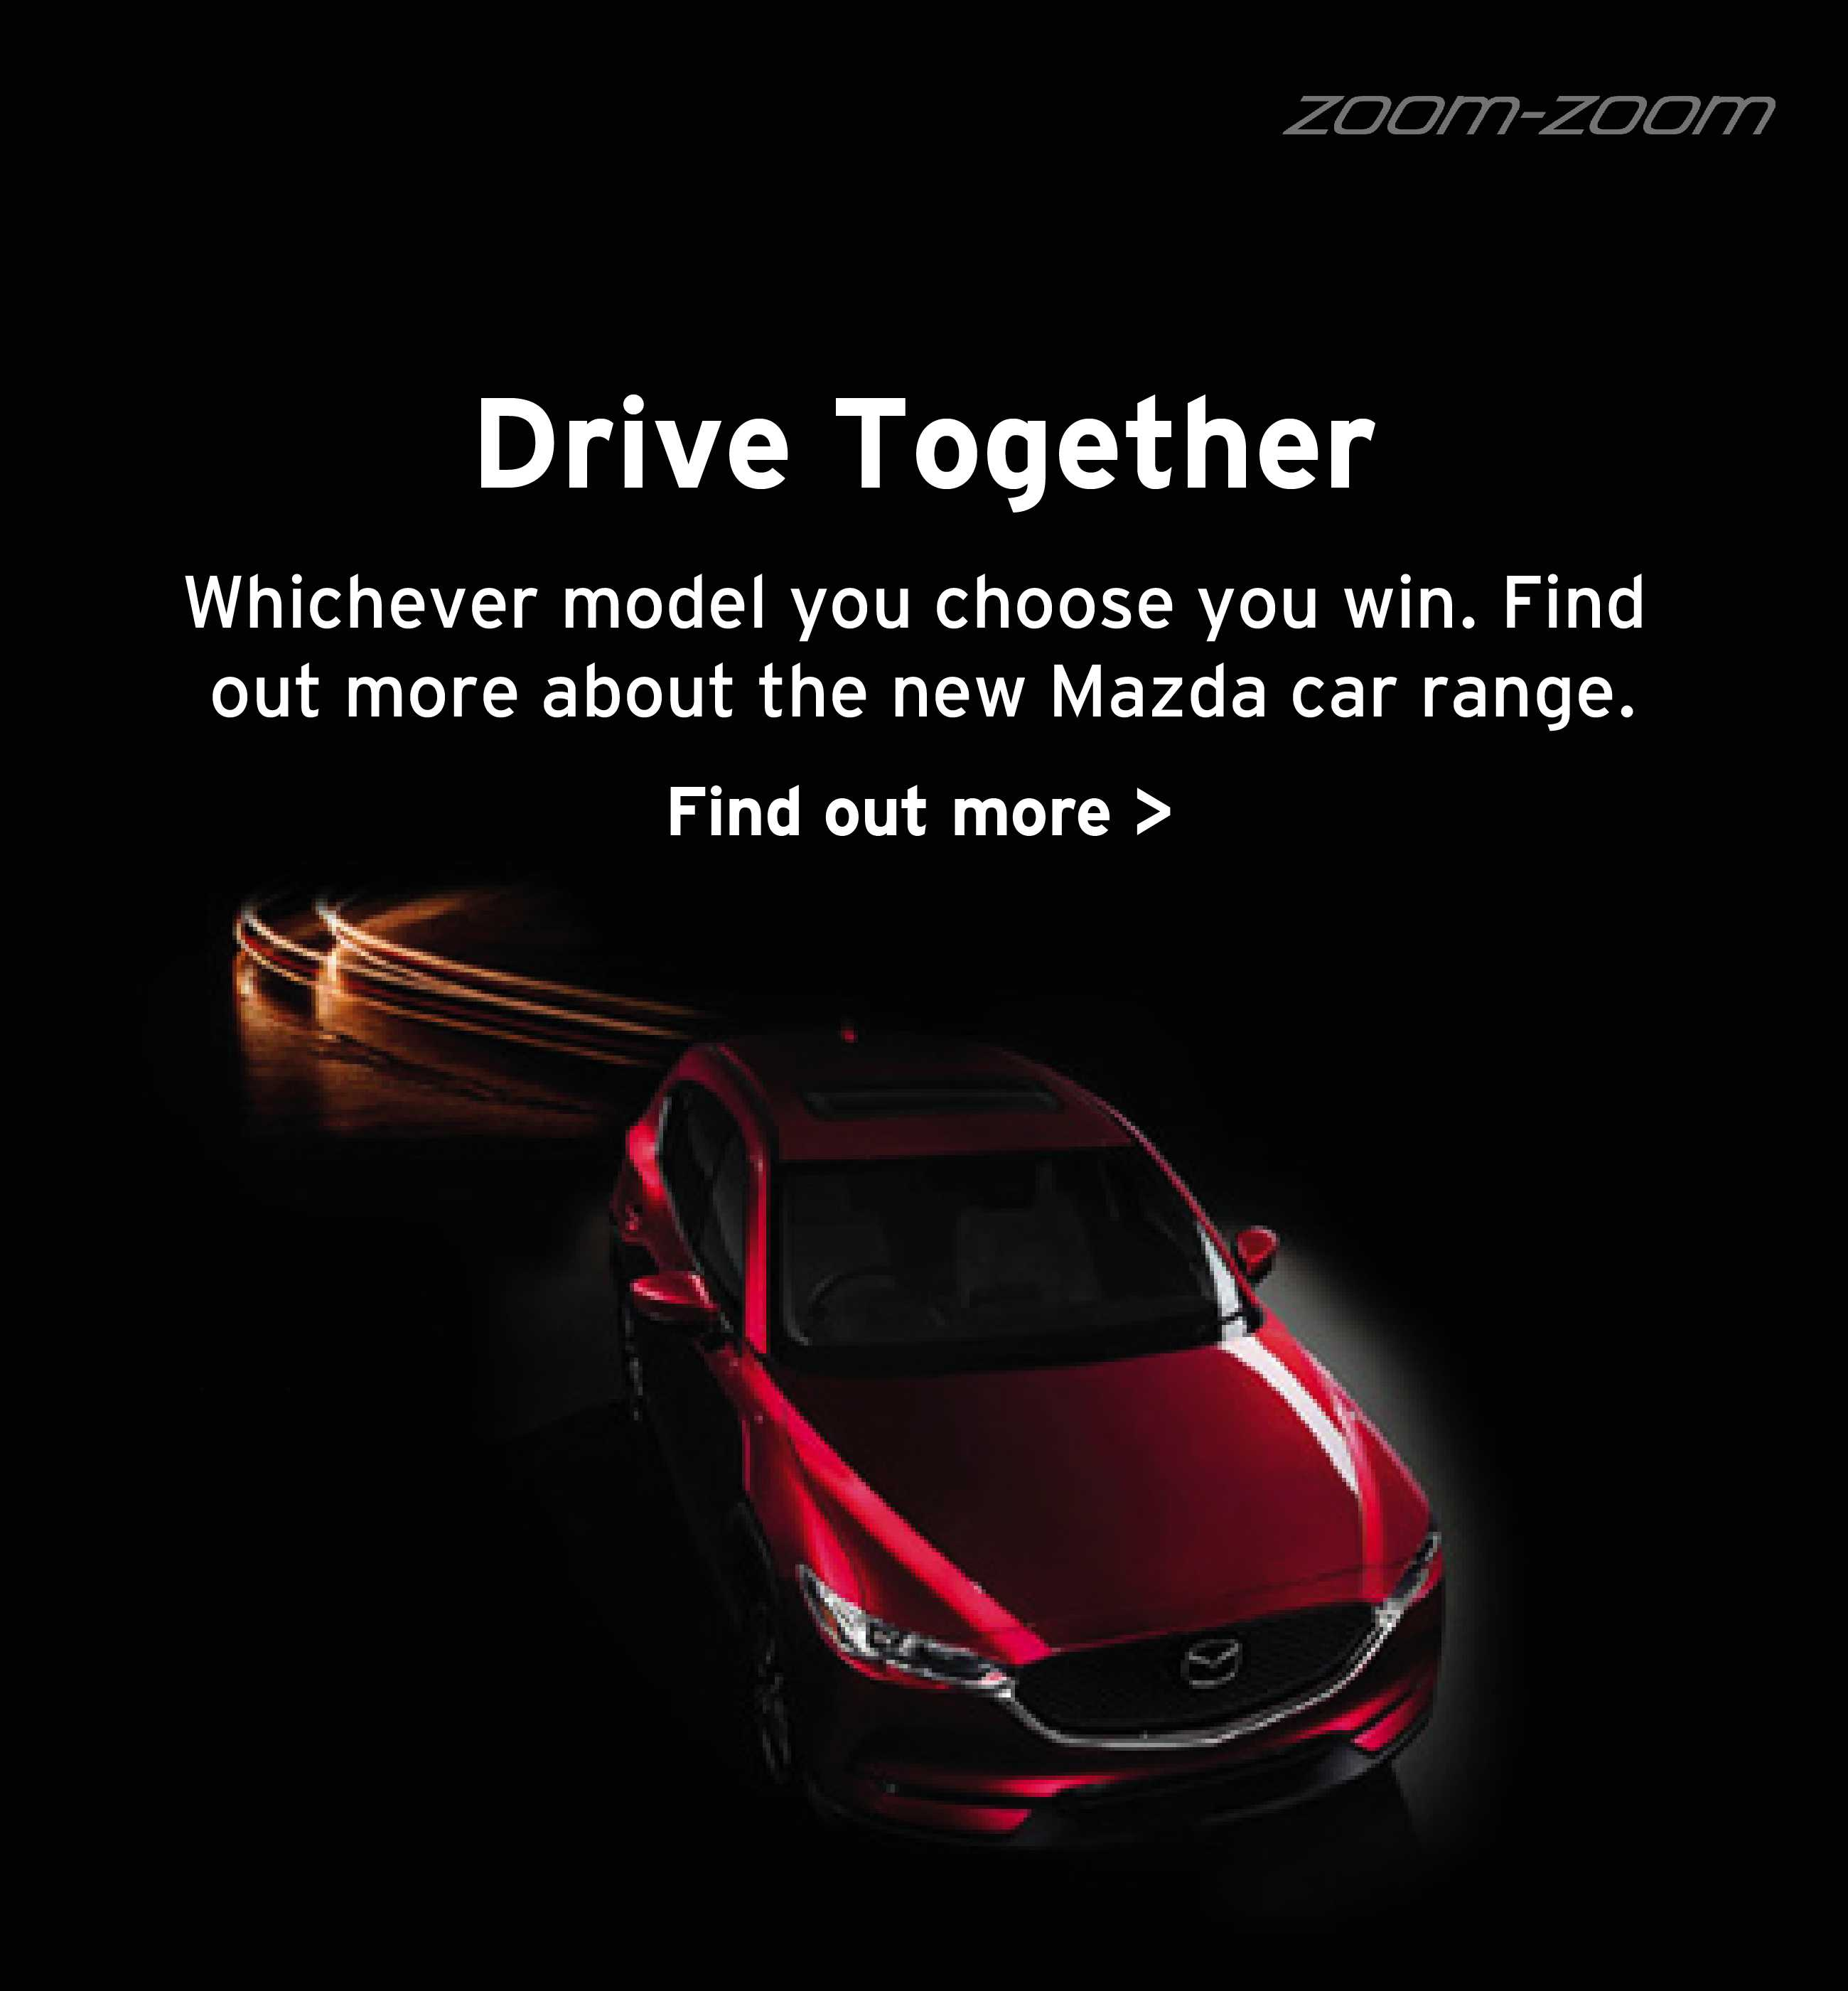 [Mazda Generic] Mazda Drive Together Banner 1